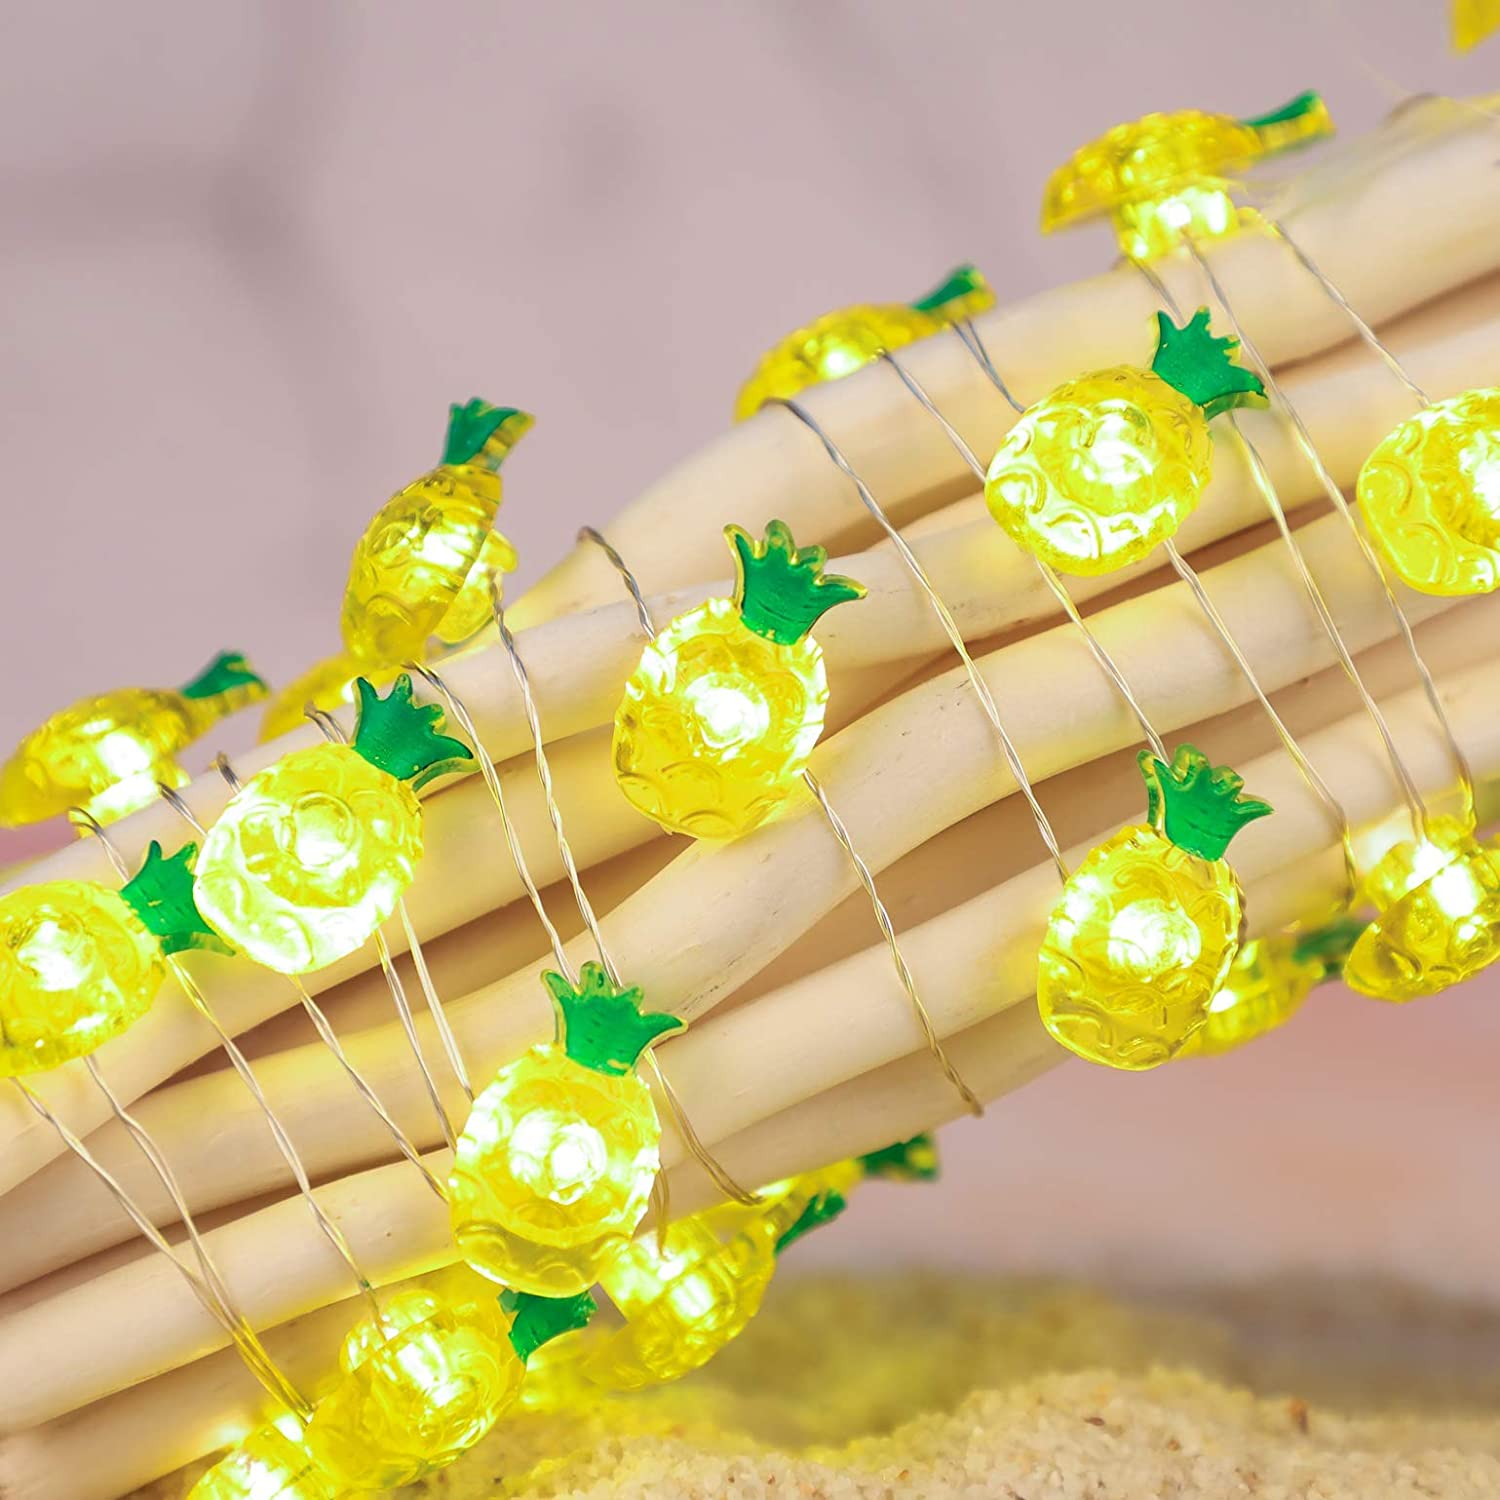 Holitown Pineapple String Lights,10ft 30LEDs Ananas Summer Theme Fairy Lights with Remote,Battery&USB Powered for Home Decor,Party,Festival,Bedroom